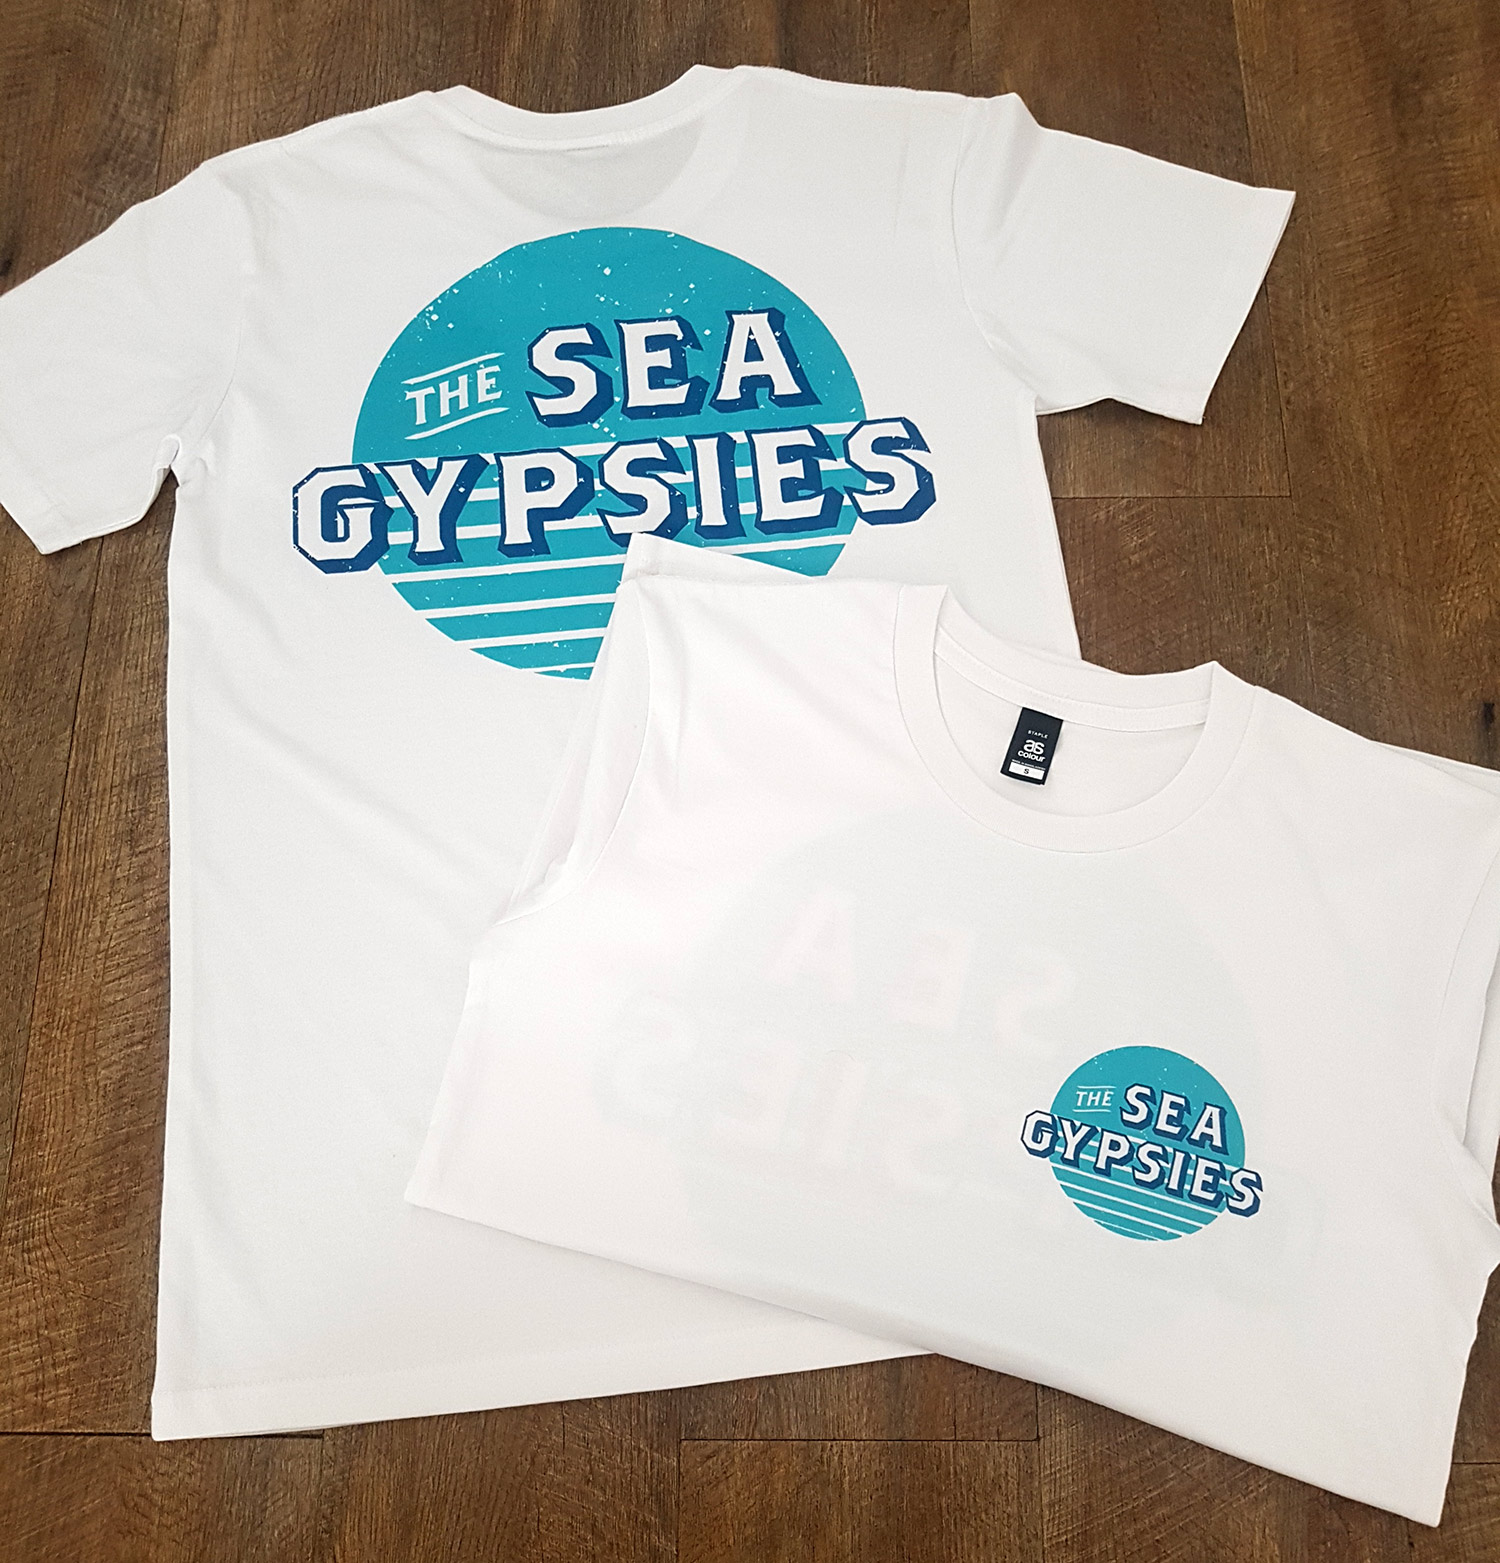 sea-gypsies-tshirts.jpg